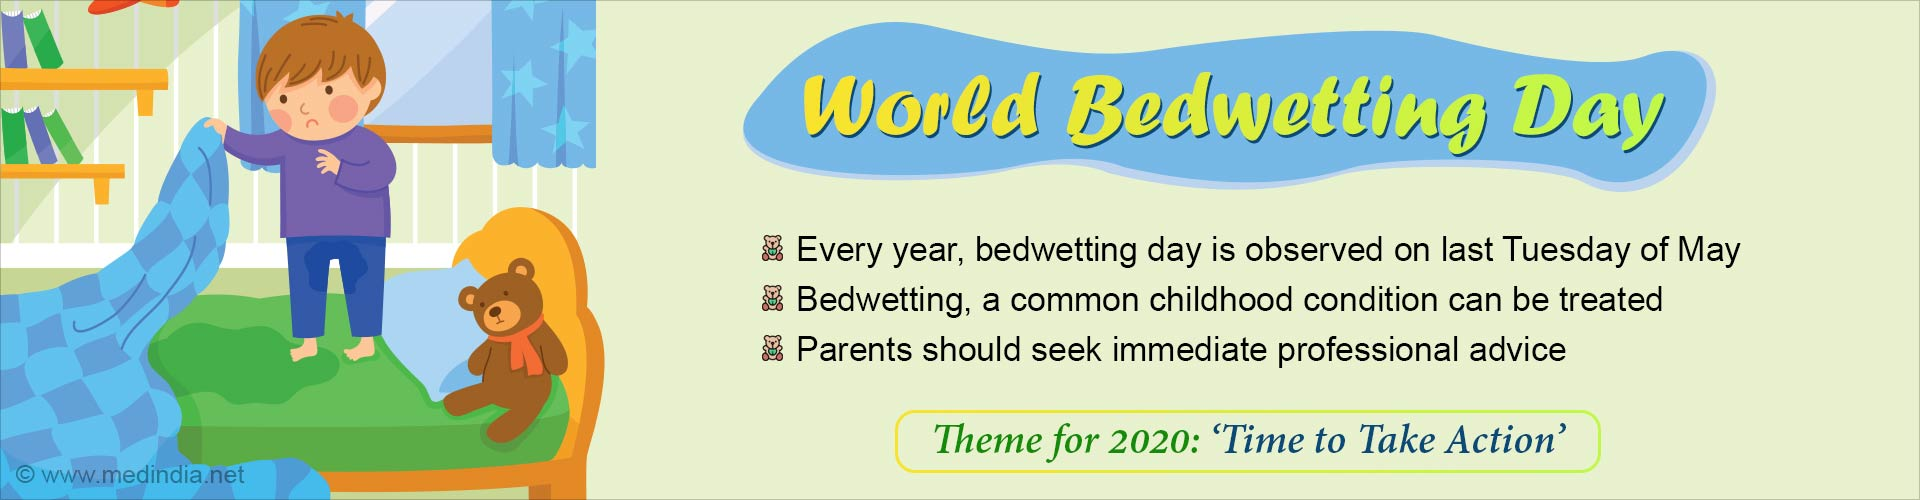 World Bedwetting Day: Time to Take Action